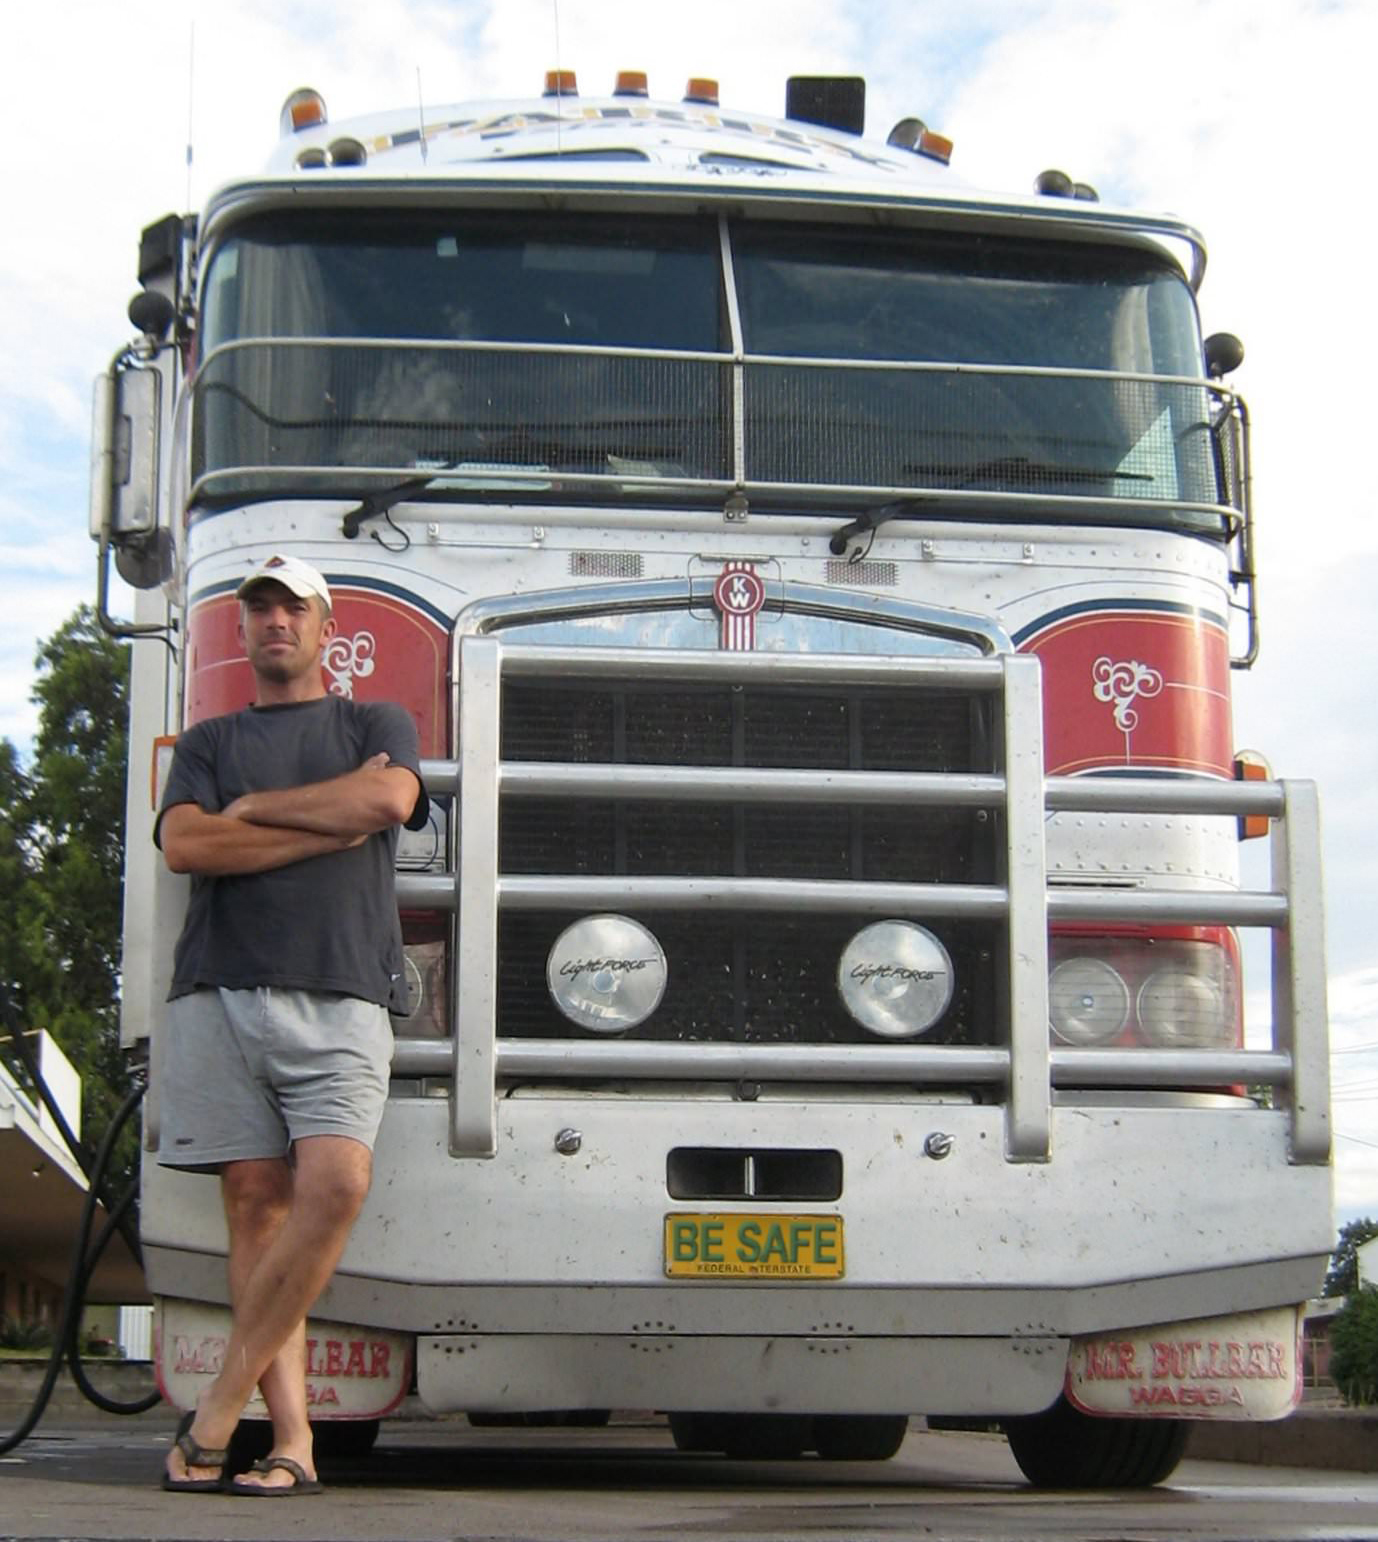 Aussie Truckie Matt in front of his red and white truck